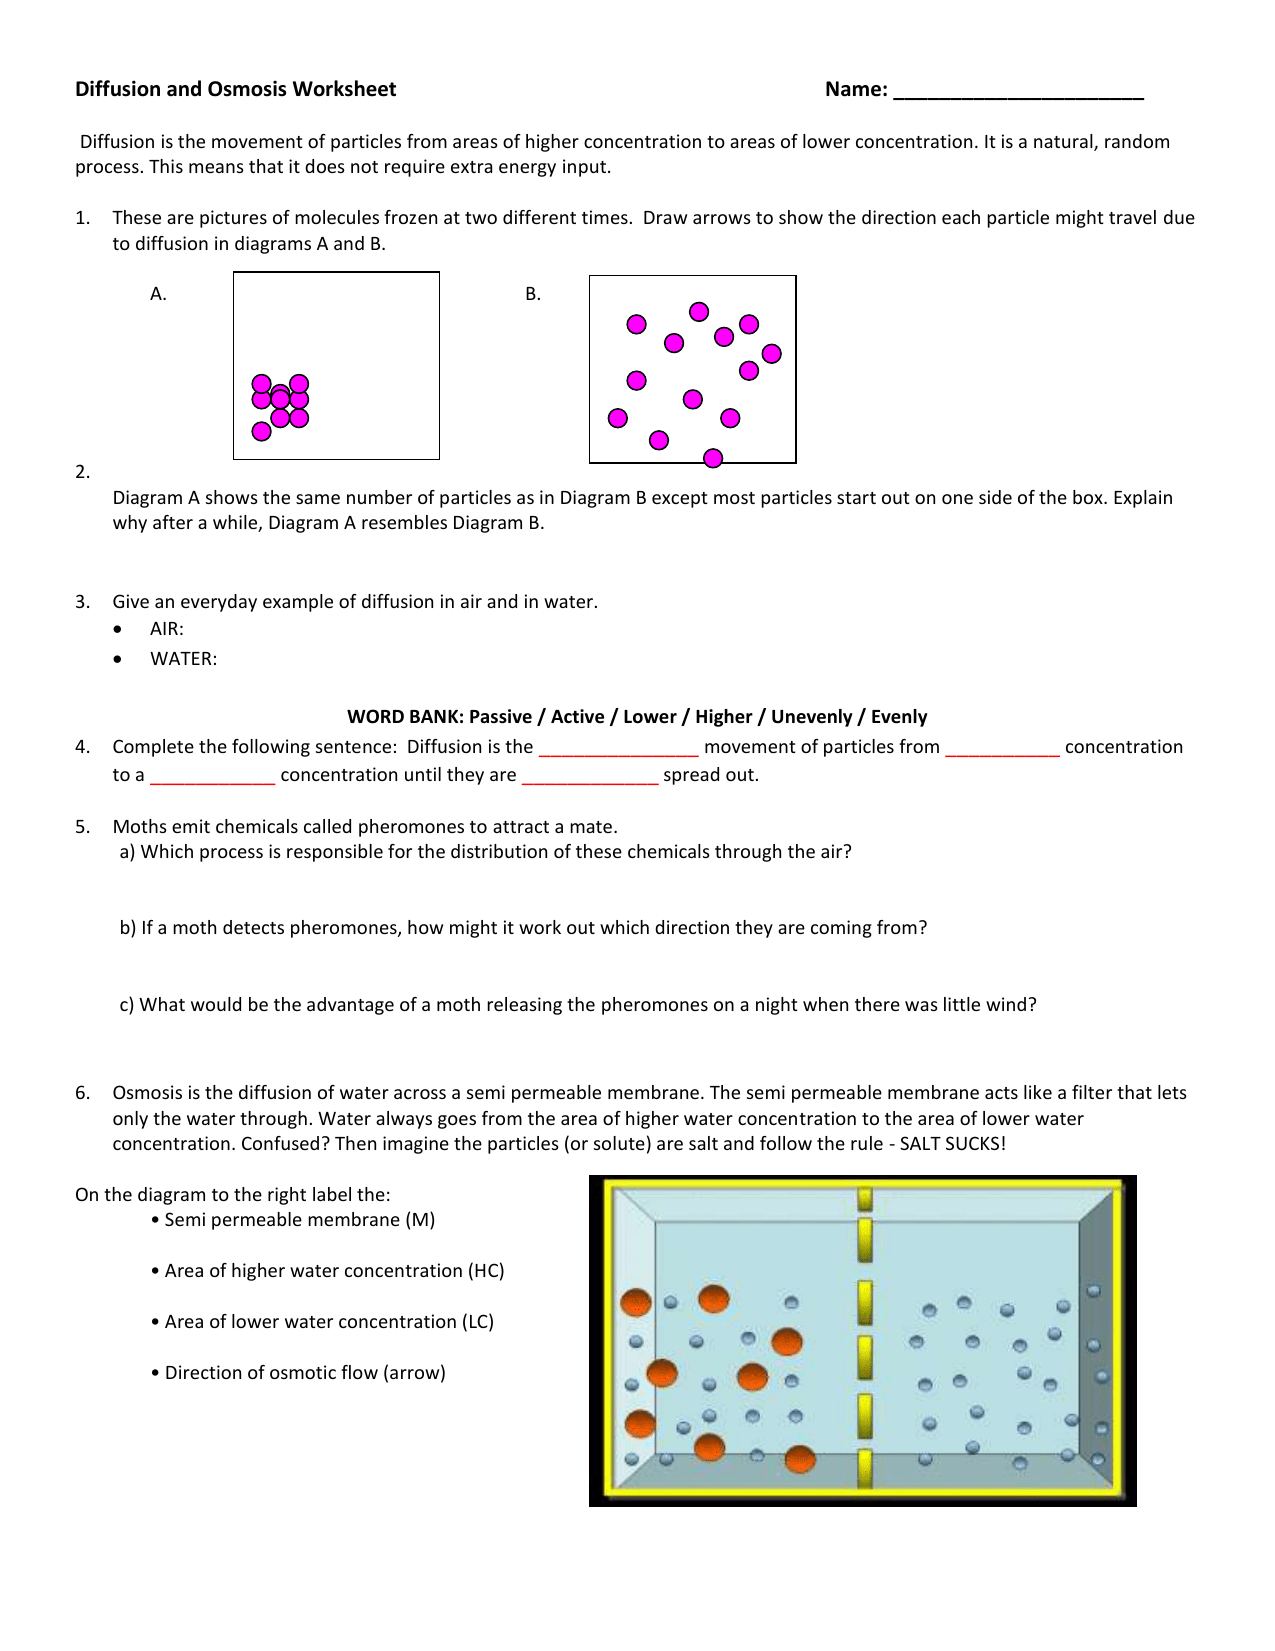 35 Osmosis And Diffusion Practice Worksheet Answers